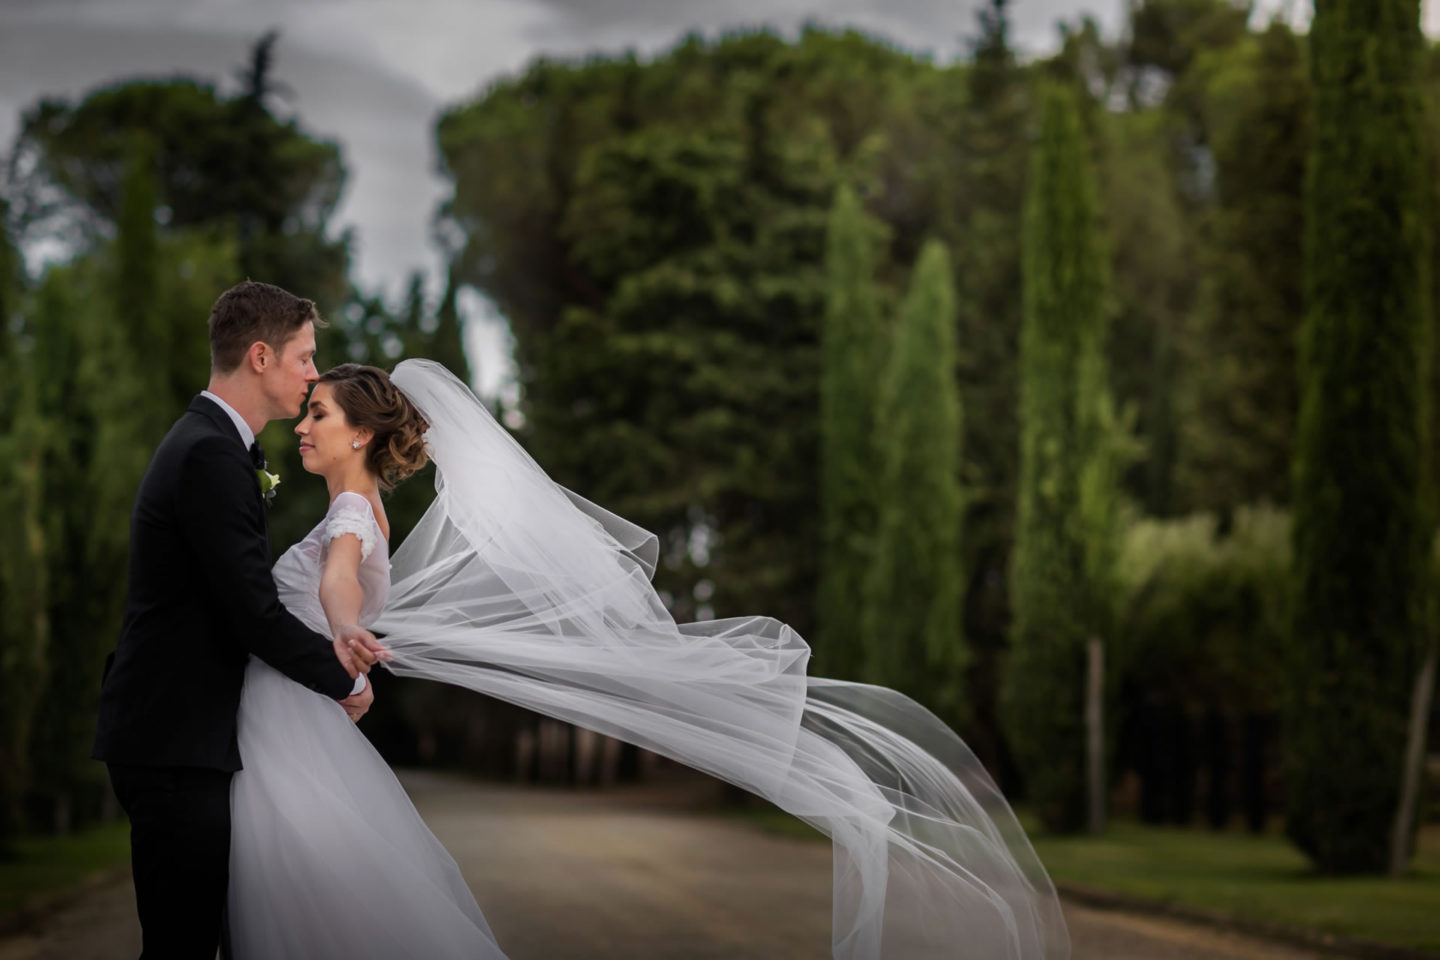 Air :: Amazing wedding day at Il Borro :: Luxury wedding photography - 23 :: Air